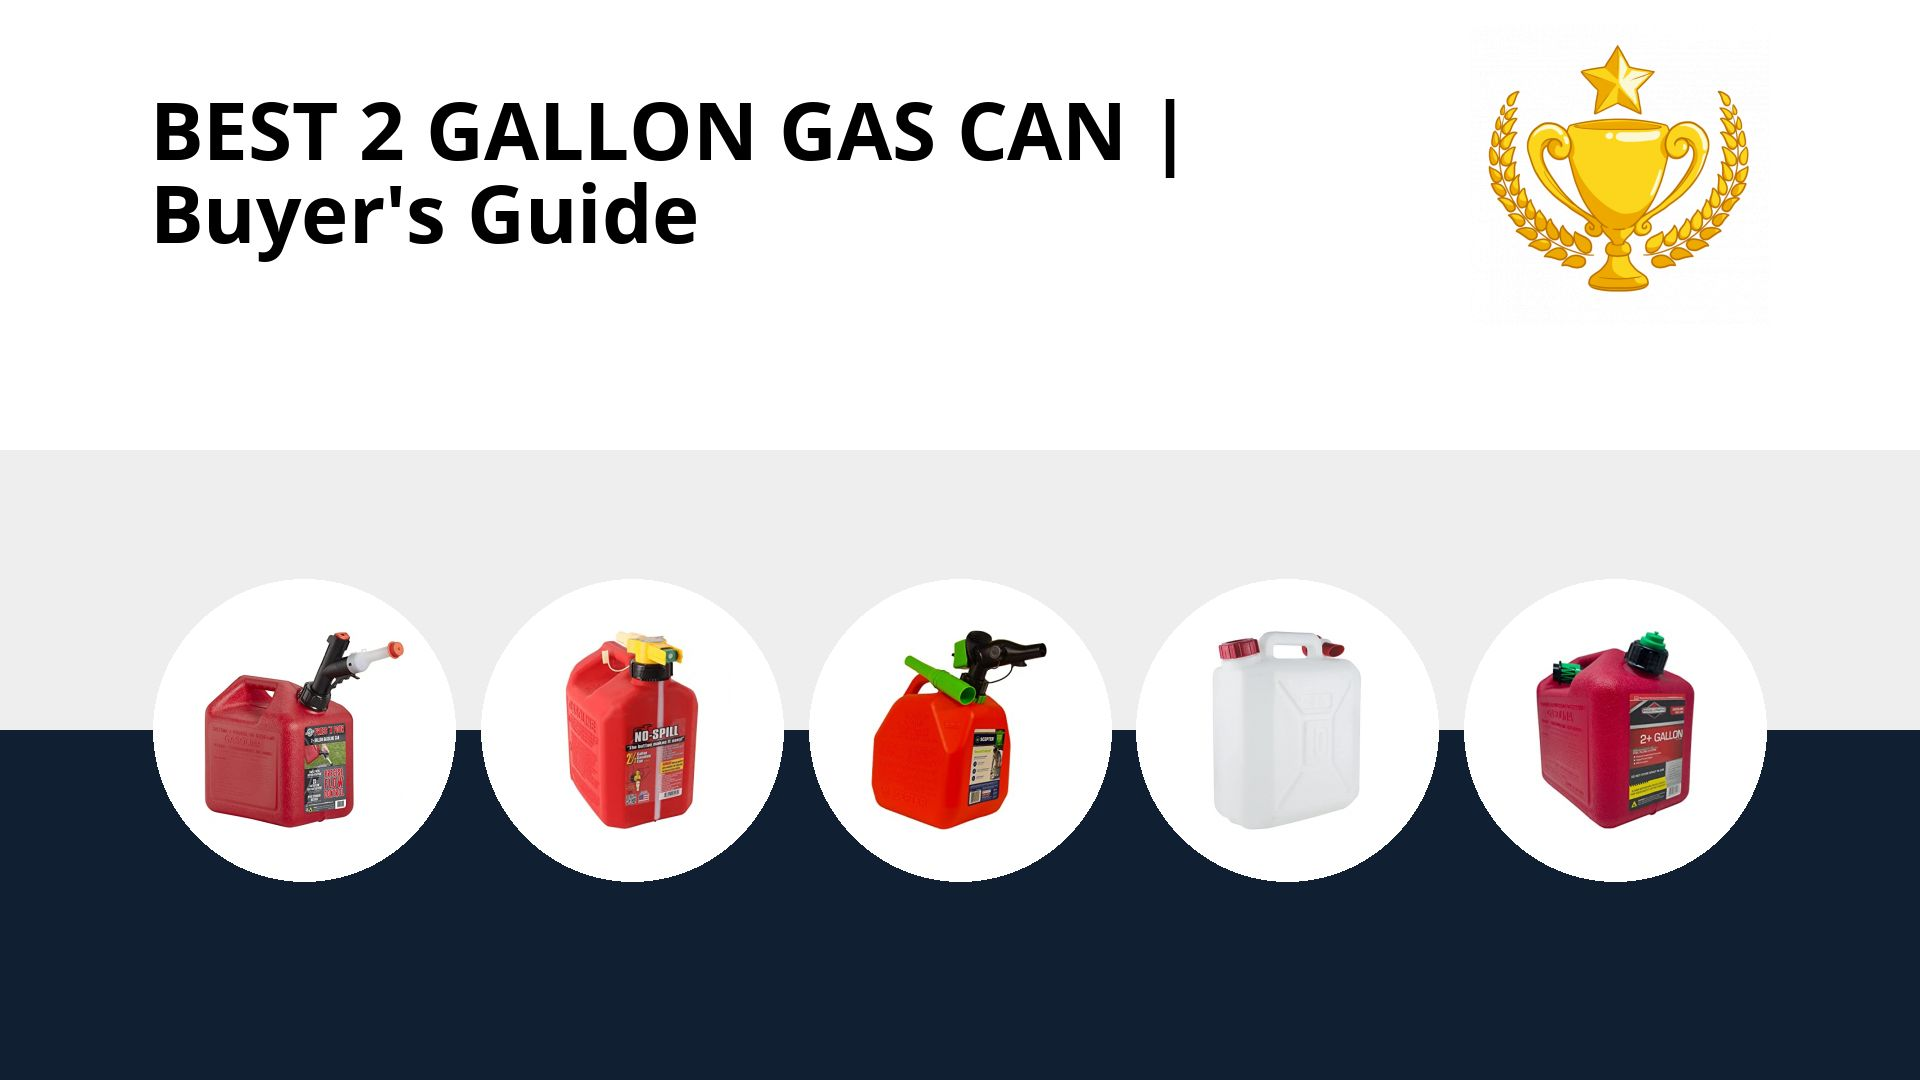 Best 2 Gallon Gas Can: image